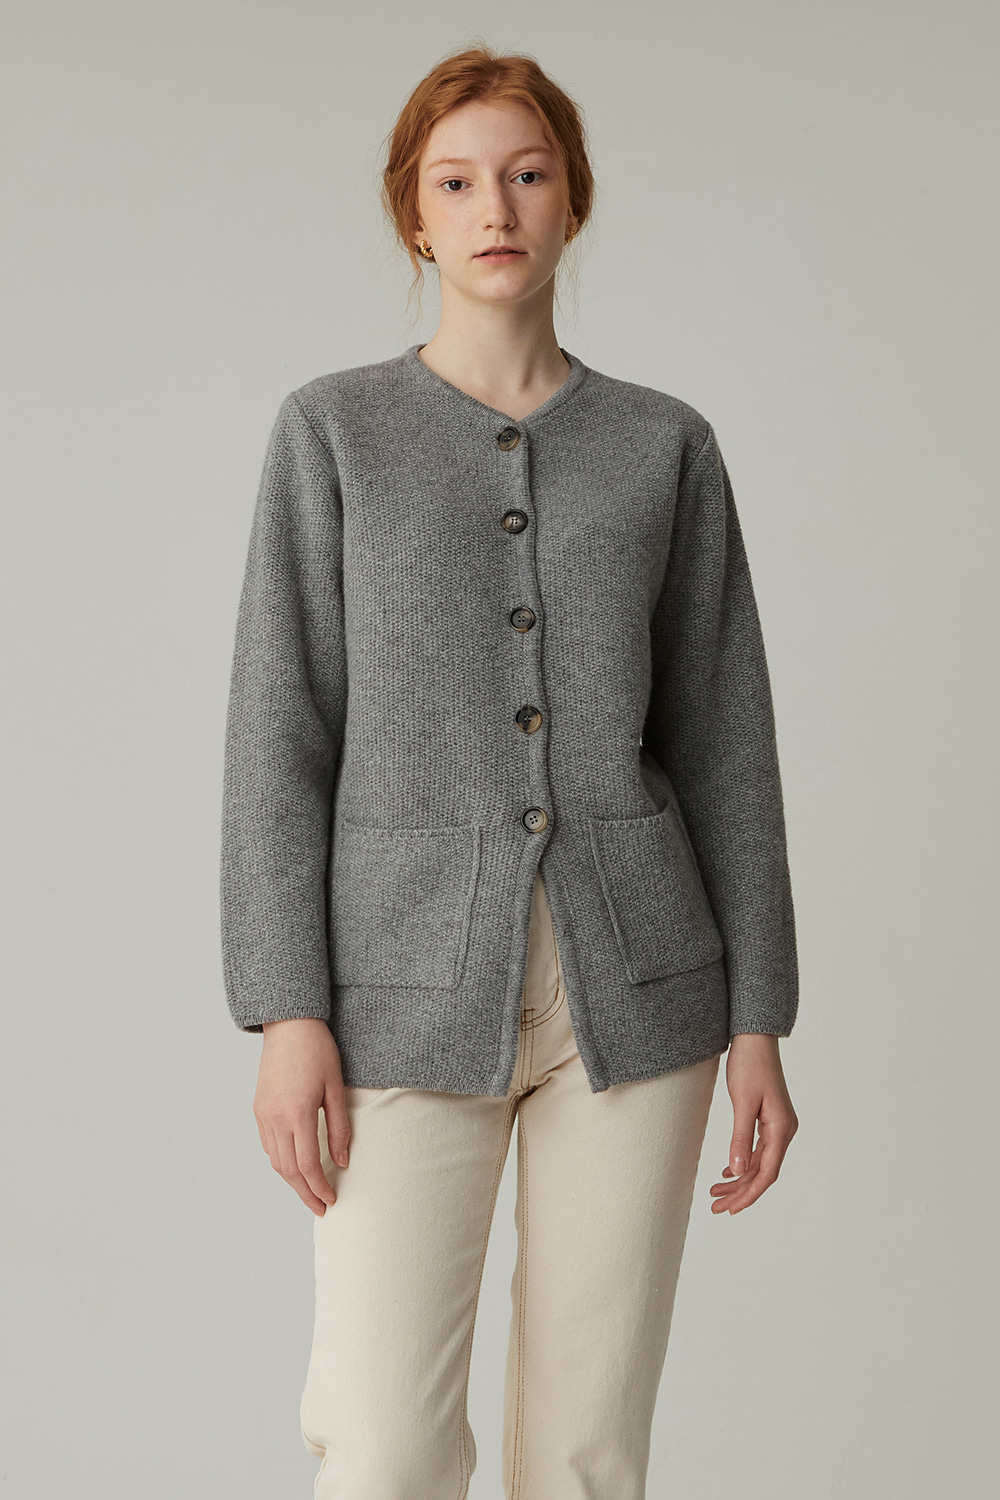 TURK WOOL JACKET (GRAY)